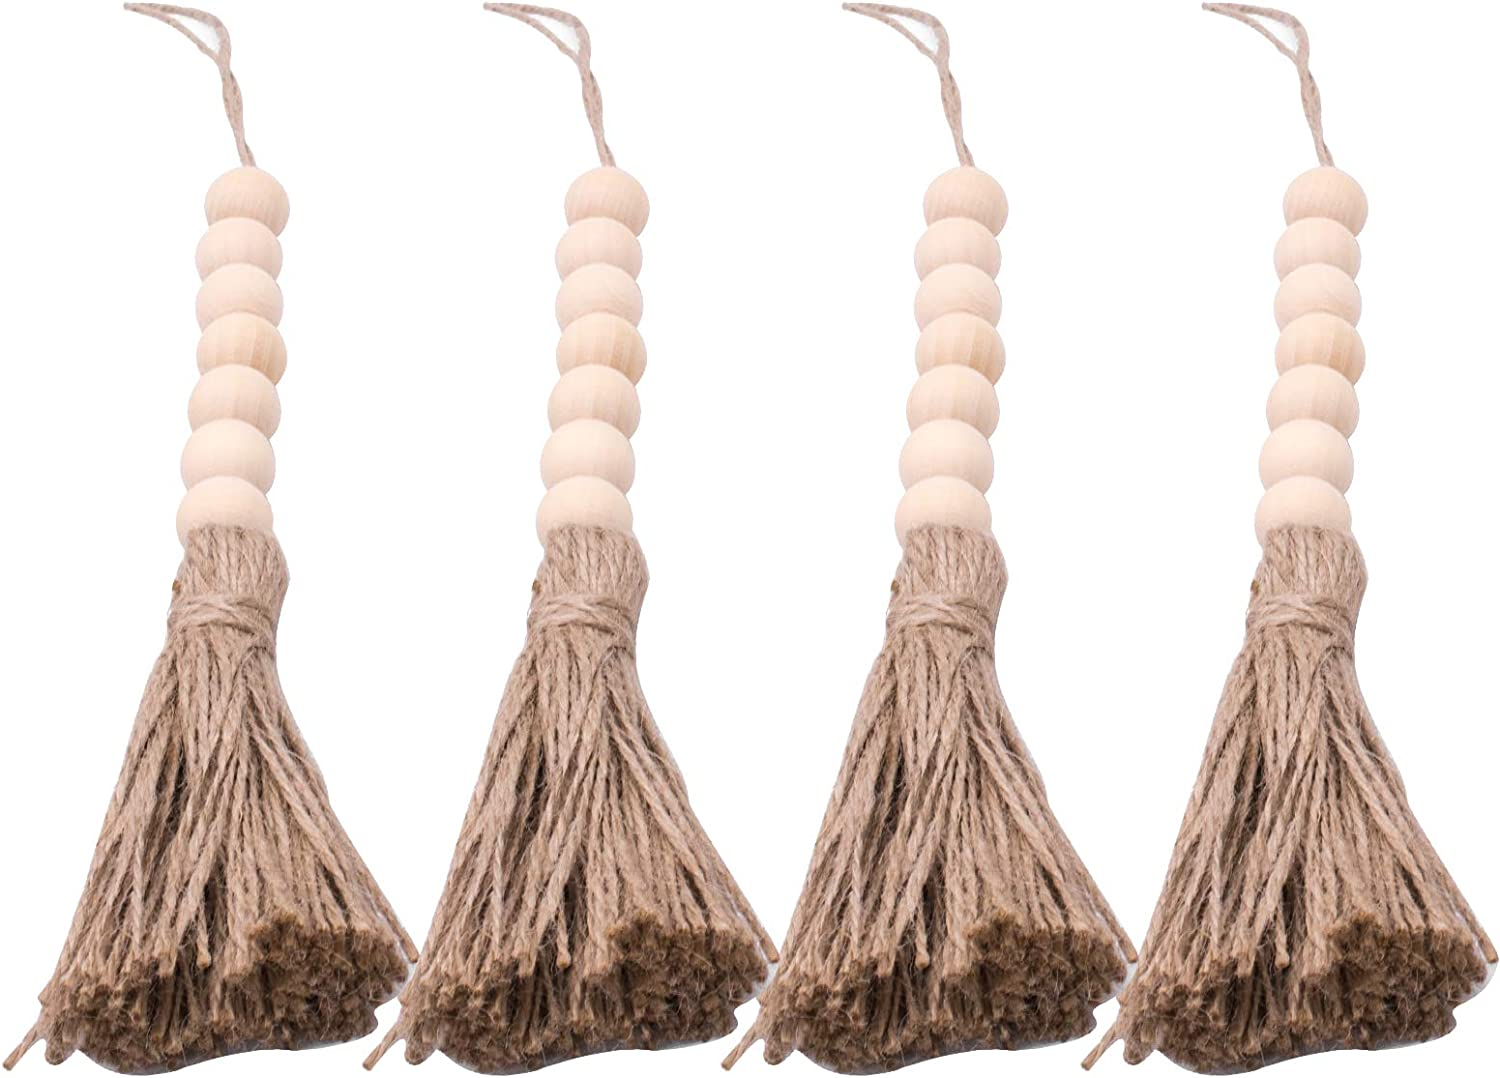 Large Wood Bead Garland Rustic Farmh Farmhouse Tassels Max 66% Bombing free shipping OFF for Beads